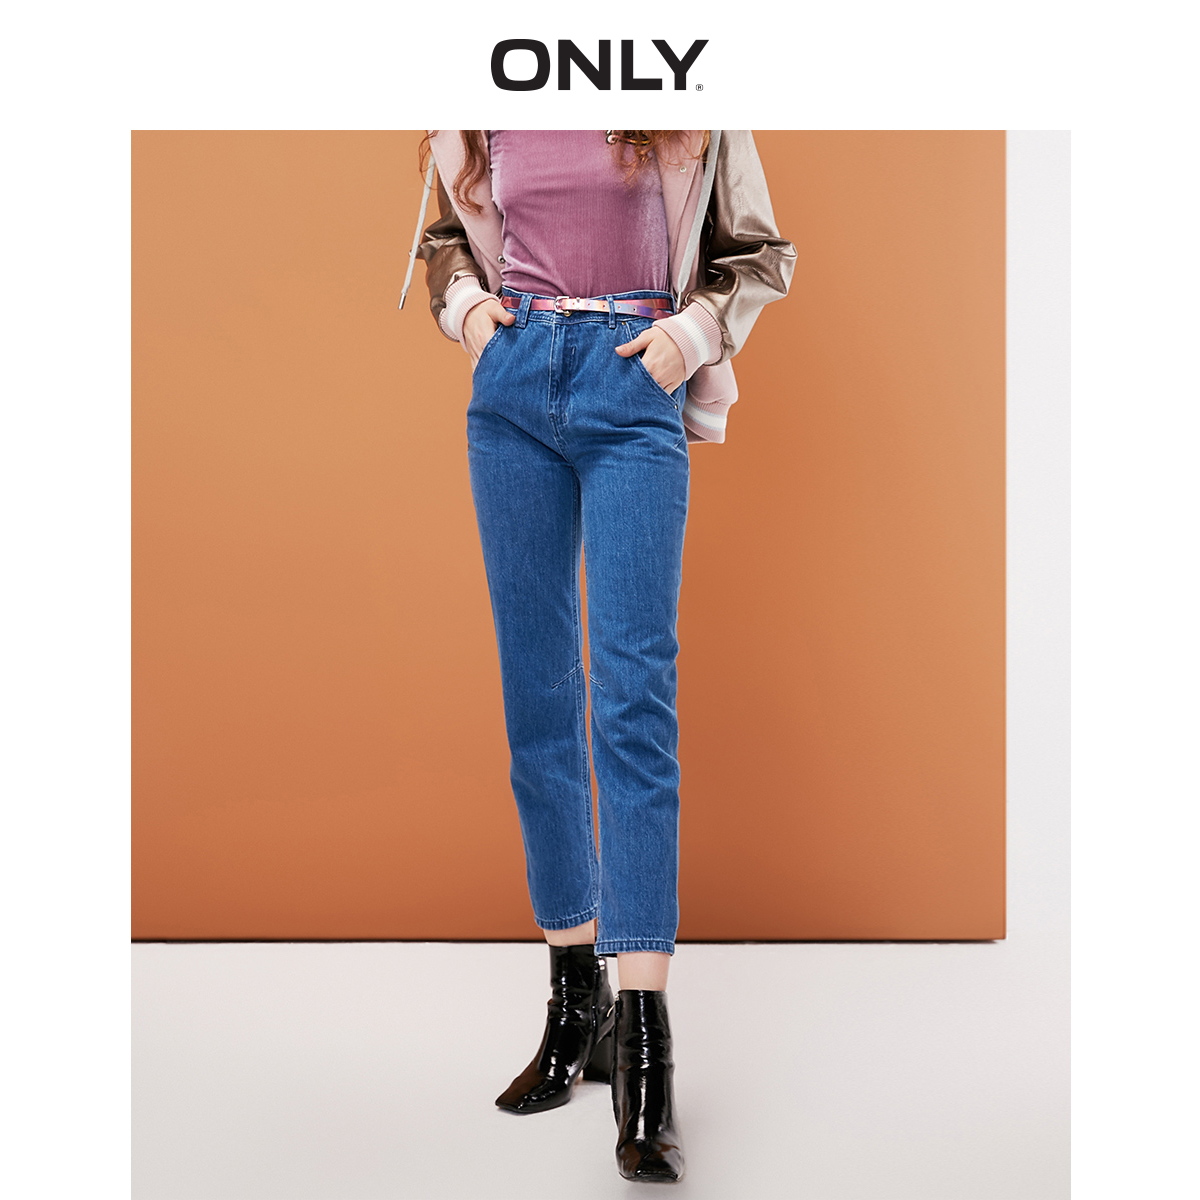 ONLY Women's Women's 100% Cotton Slim Fit Tight-leg Crop Jeans | 119149692